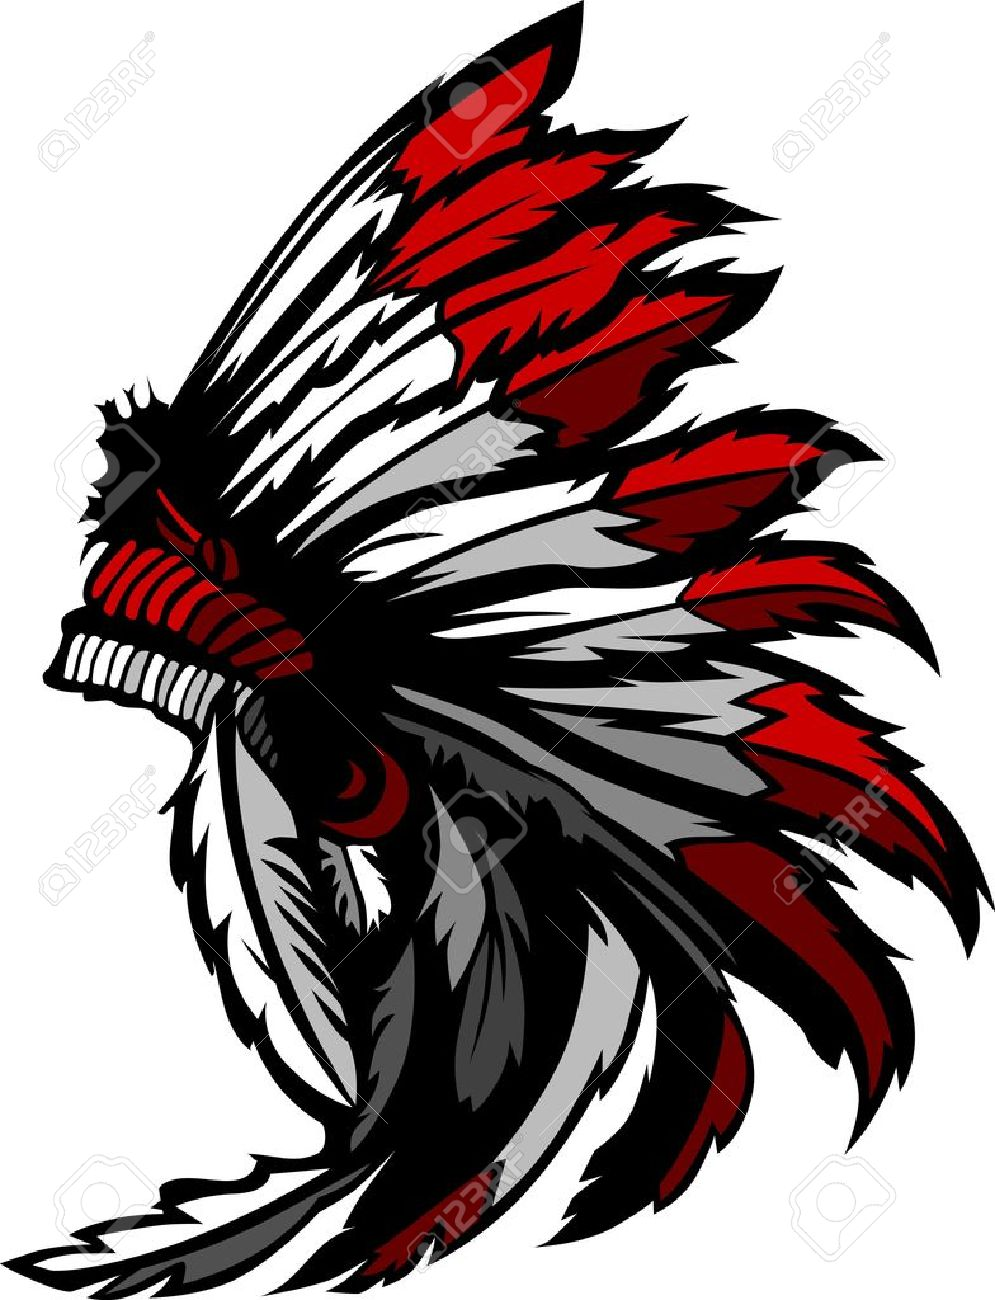 graphic native american indian chief headdress royalty free cliparts rh 123rf com native american vector images native american vector pattern free